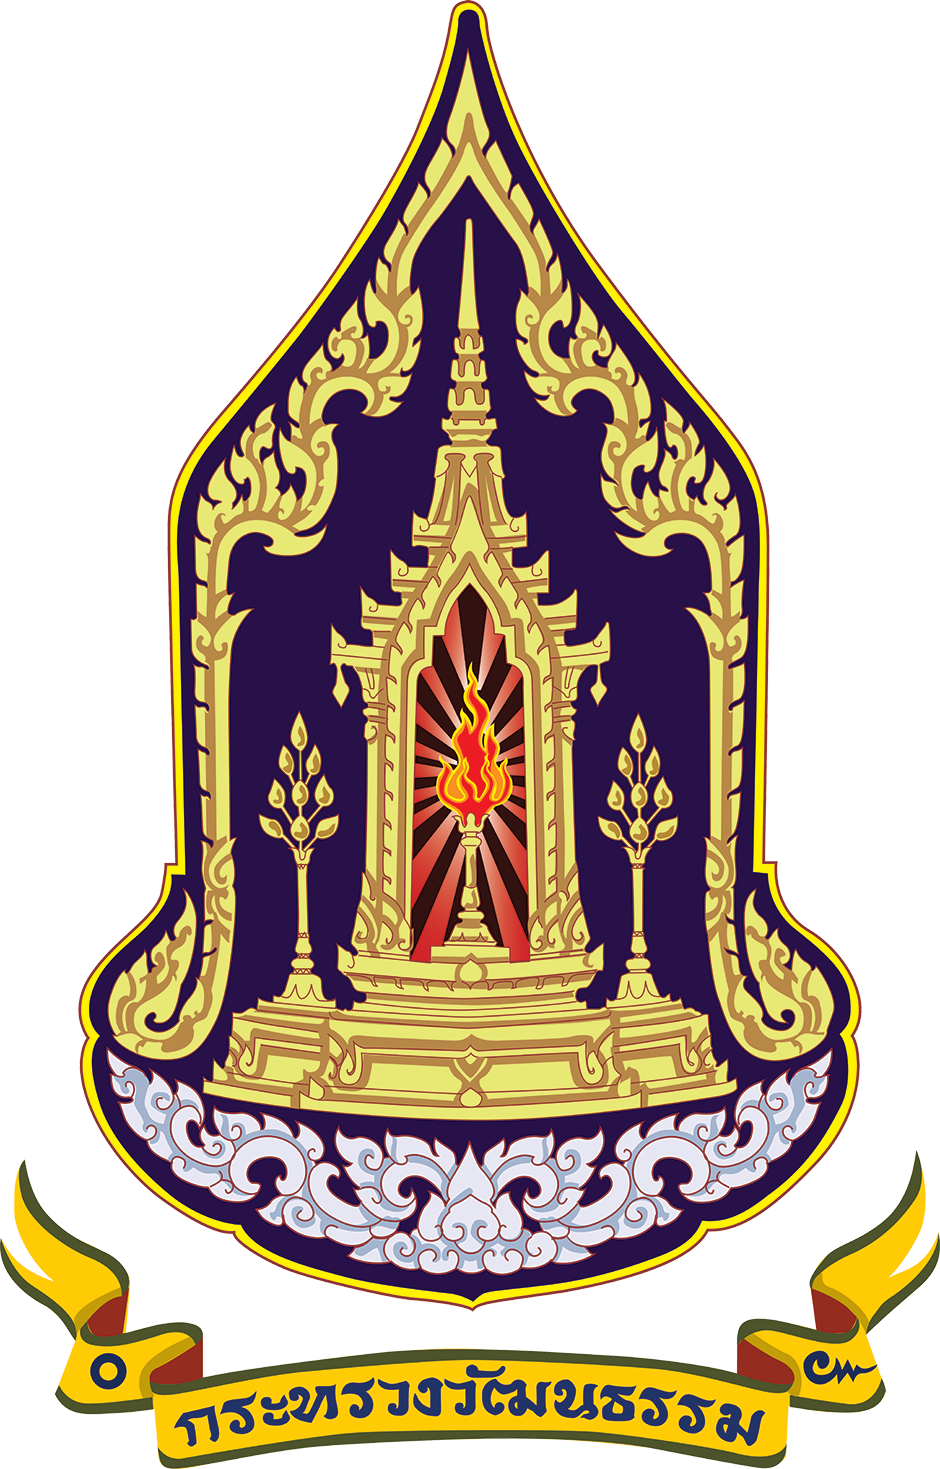 Ministry of Culture Thailand  Wikipedia